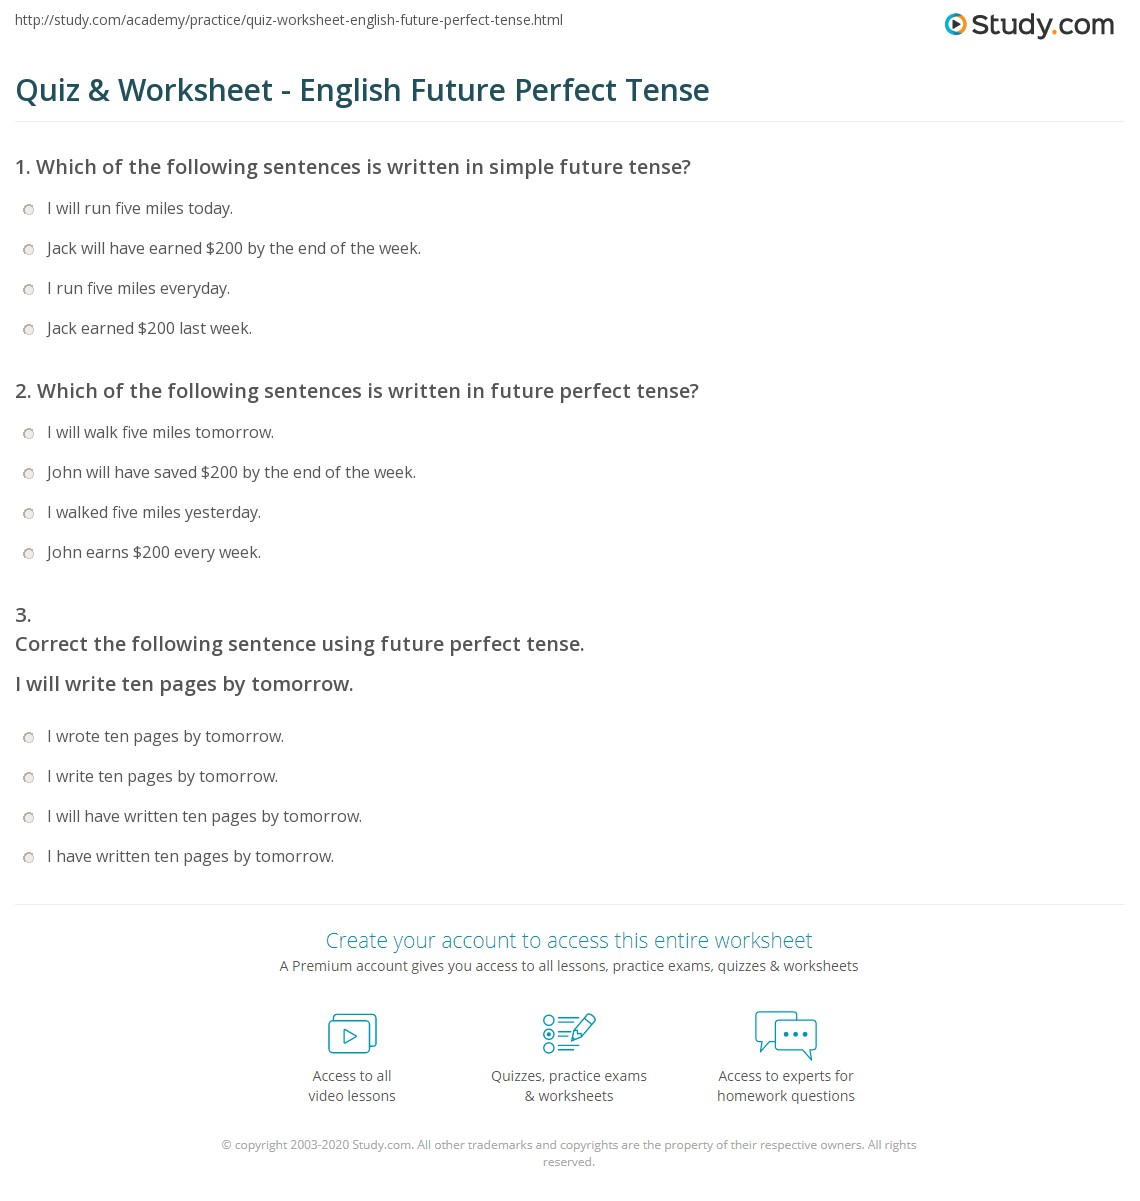 Quiz & Worksheet - English Future Perfect Tense | Study.com